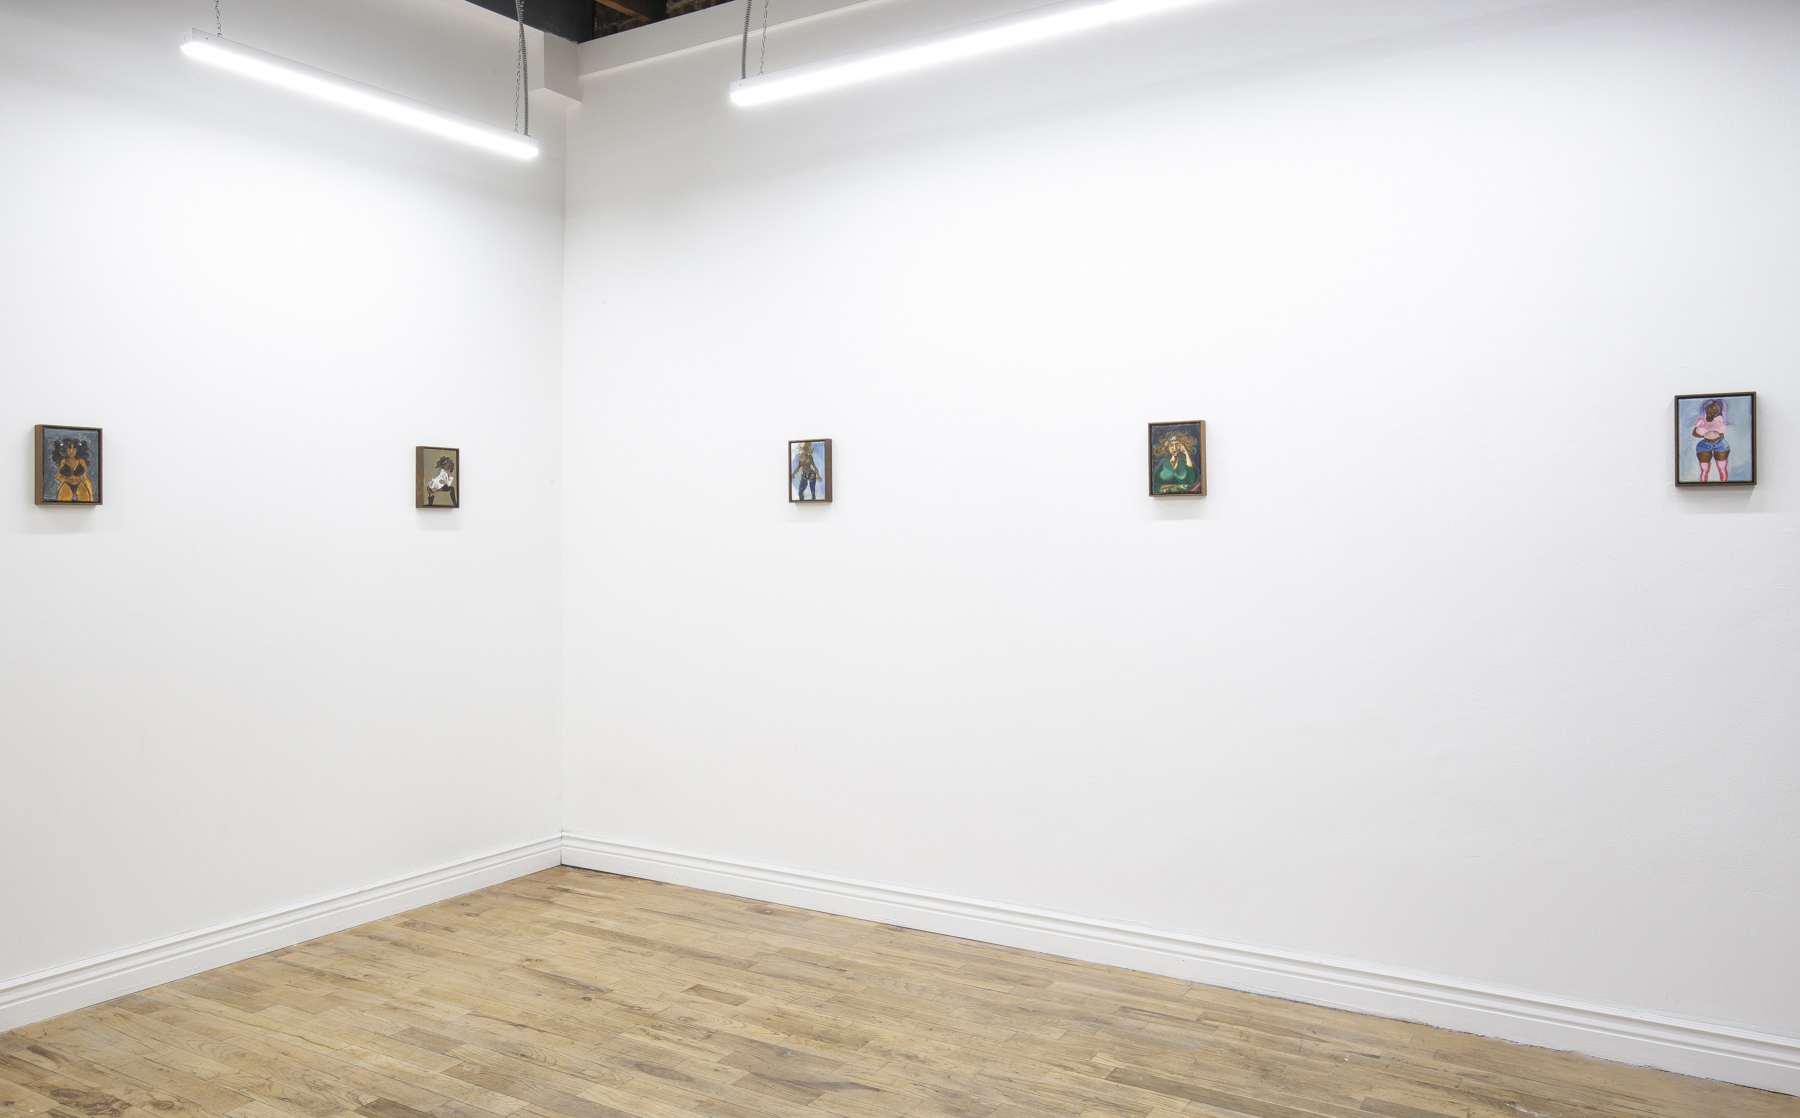 Installation view,  Time Never Mattered,  Efrain Lopez Projects, Chicago, 2018